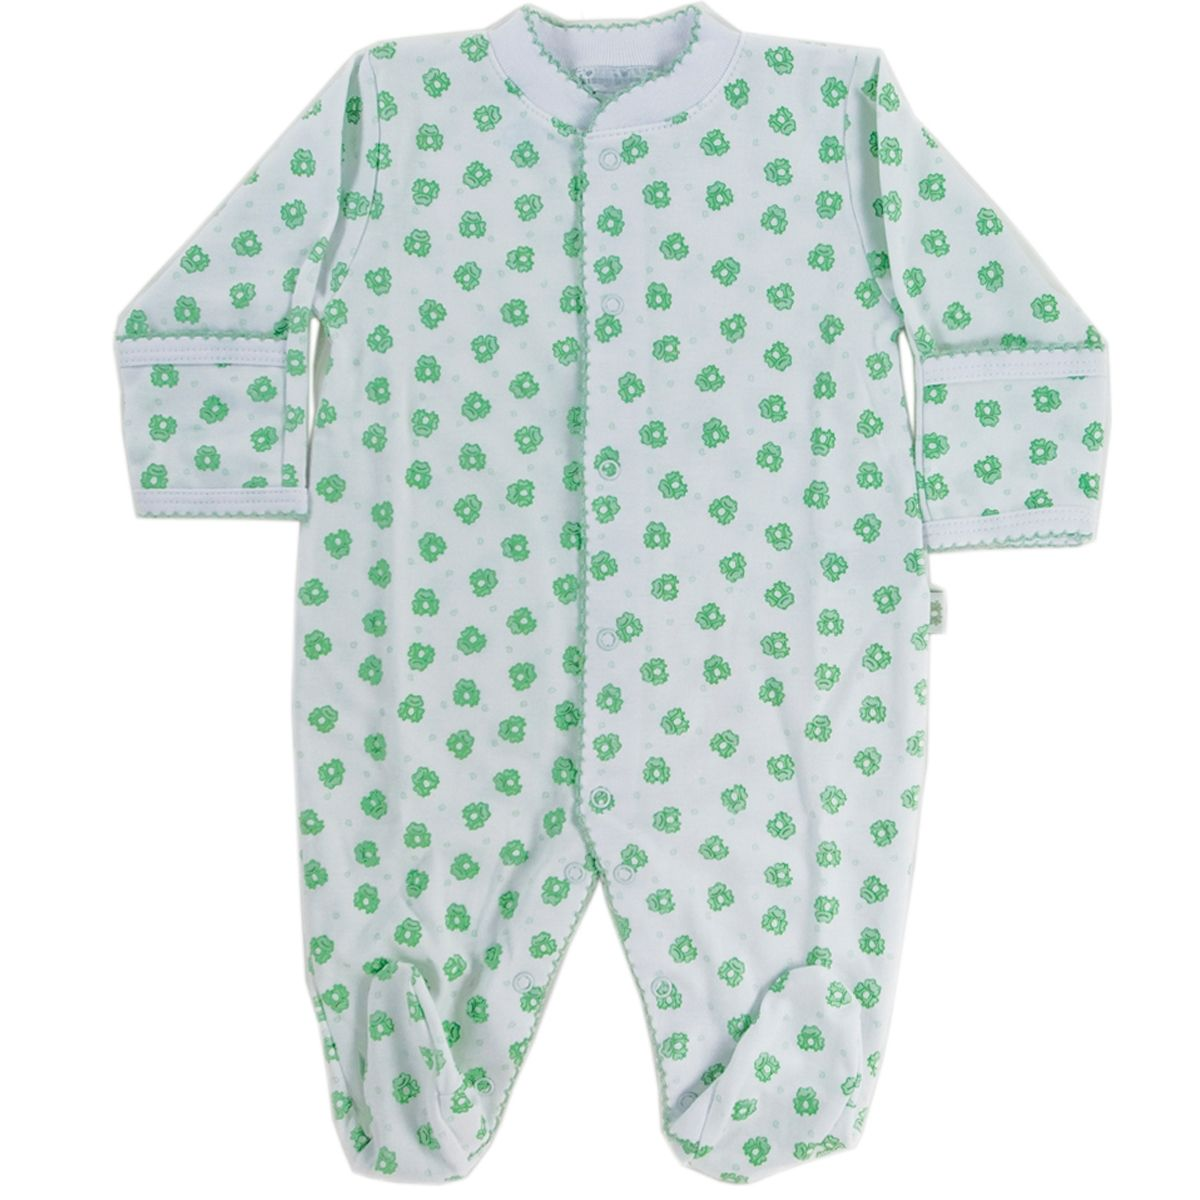 dd1b68c15 Kissy Kissy Footie Green Frog | Twins! | Green frog, Baby, Infant